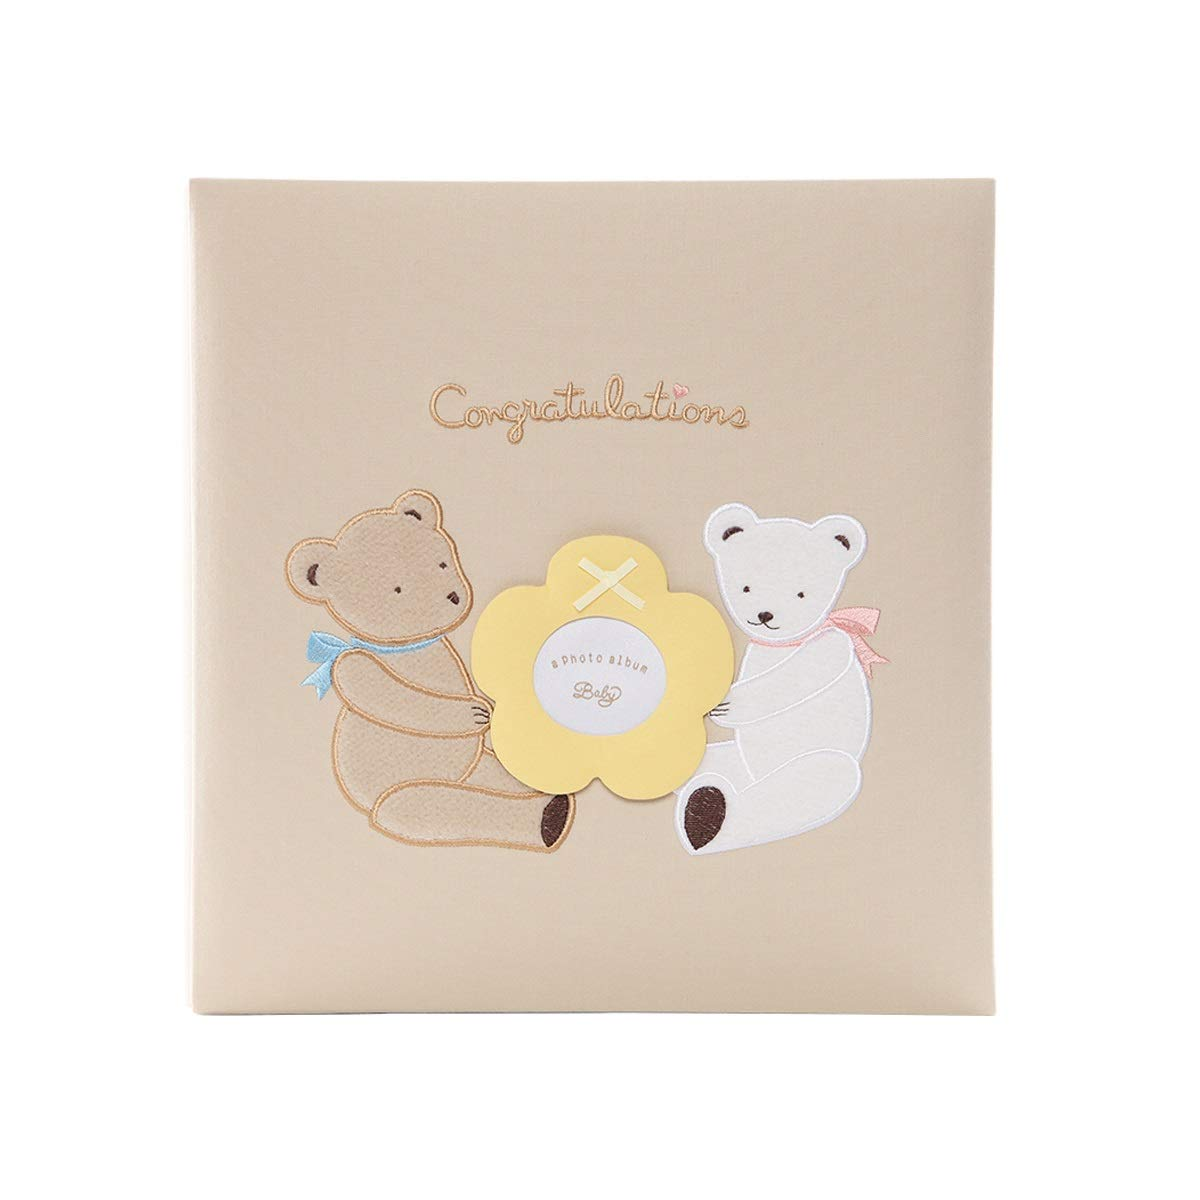 XIONGHAIZI Growth Memorial Birthday Gift, DIY Film Paste Album (Color : Brown) by XIONGHAIZI